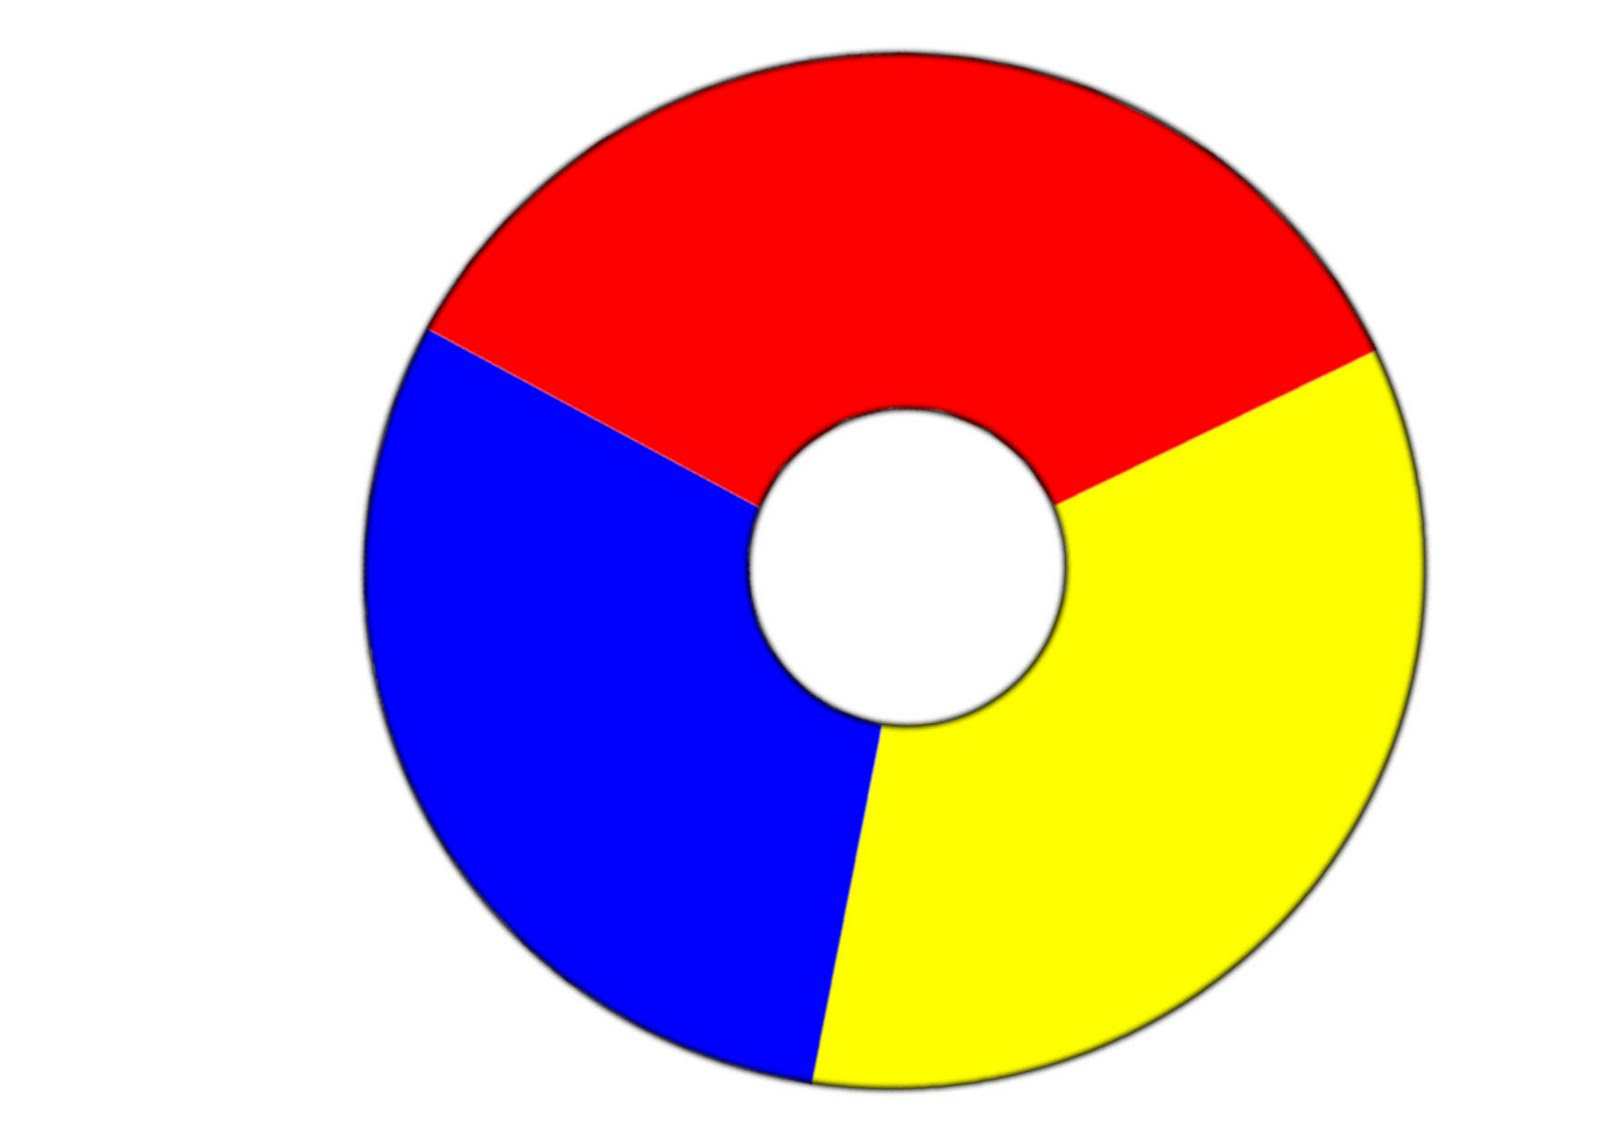 Color Combination Principles The Colour Wheel